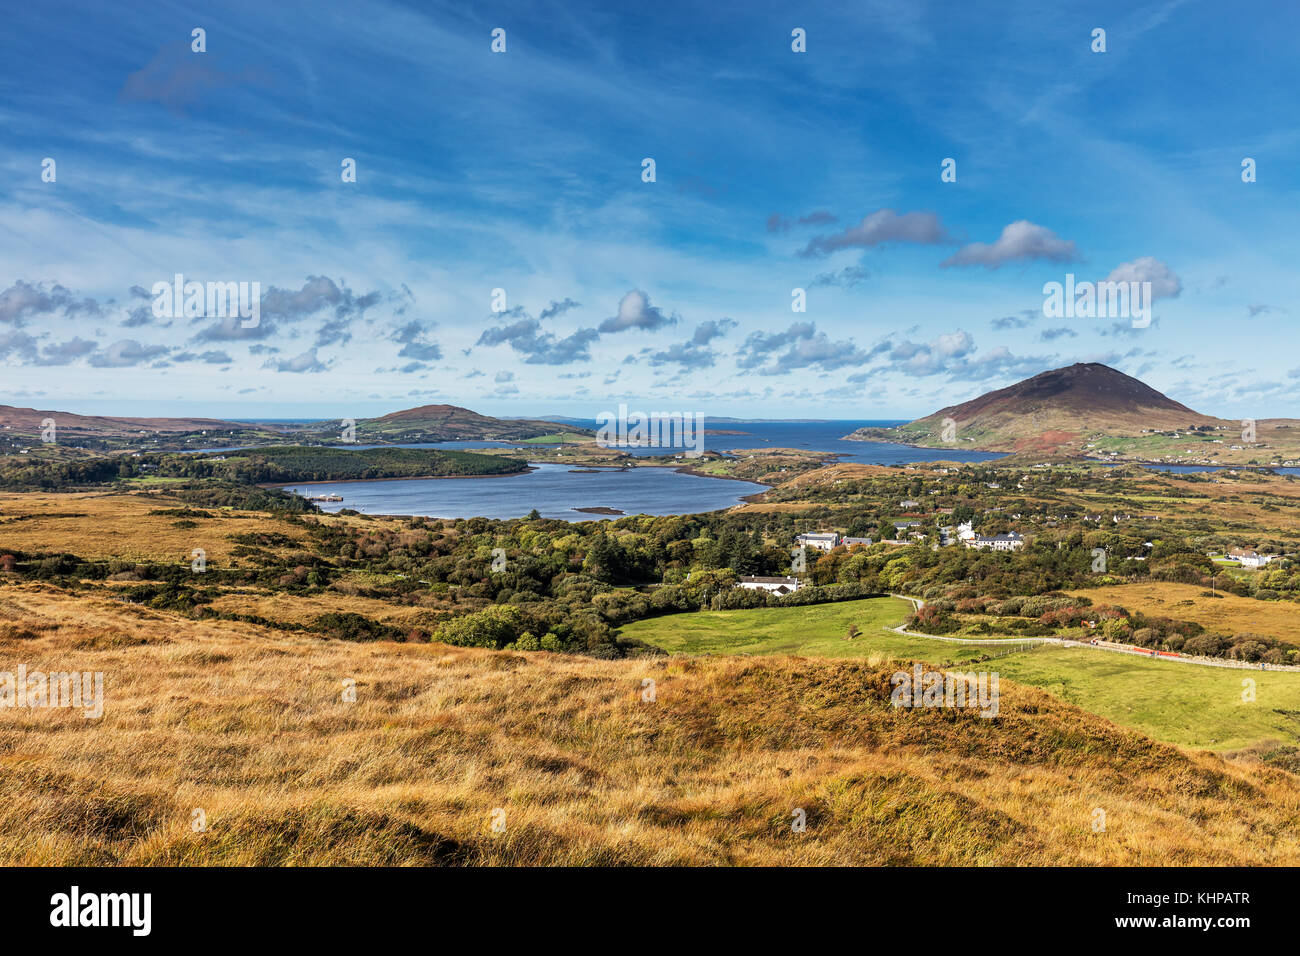 Beautiful view from the Lower Diamond Hill Walk in Connemara National Park, Letterfrack, Co. Galway, Ireland - Stock Image